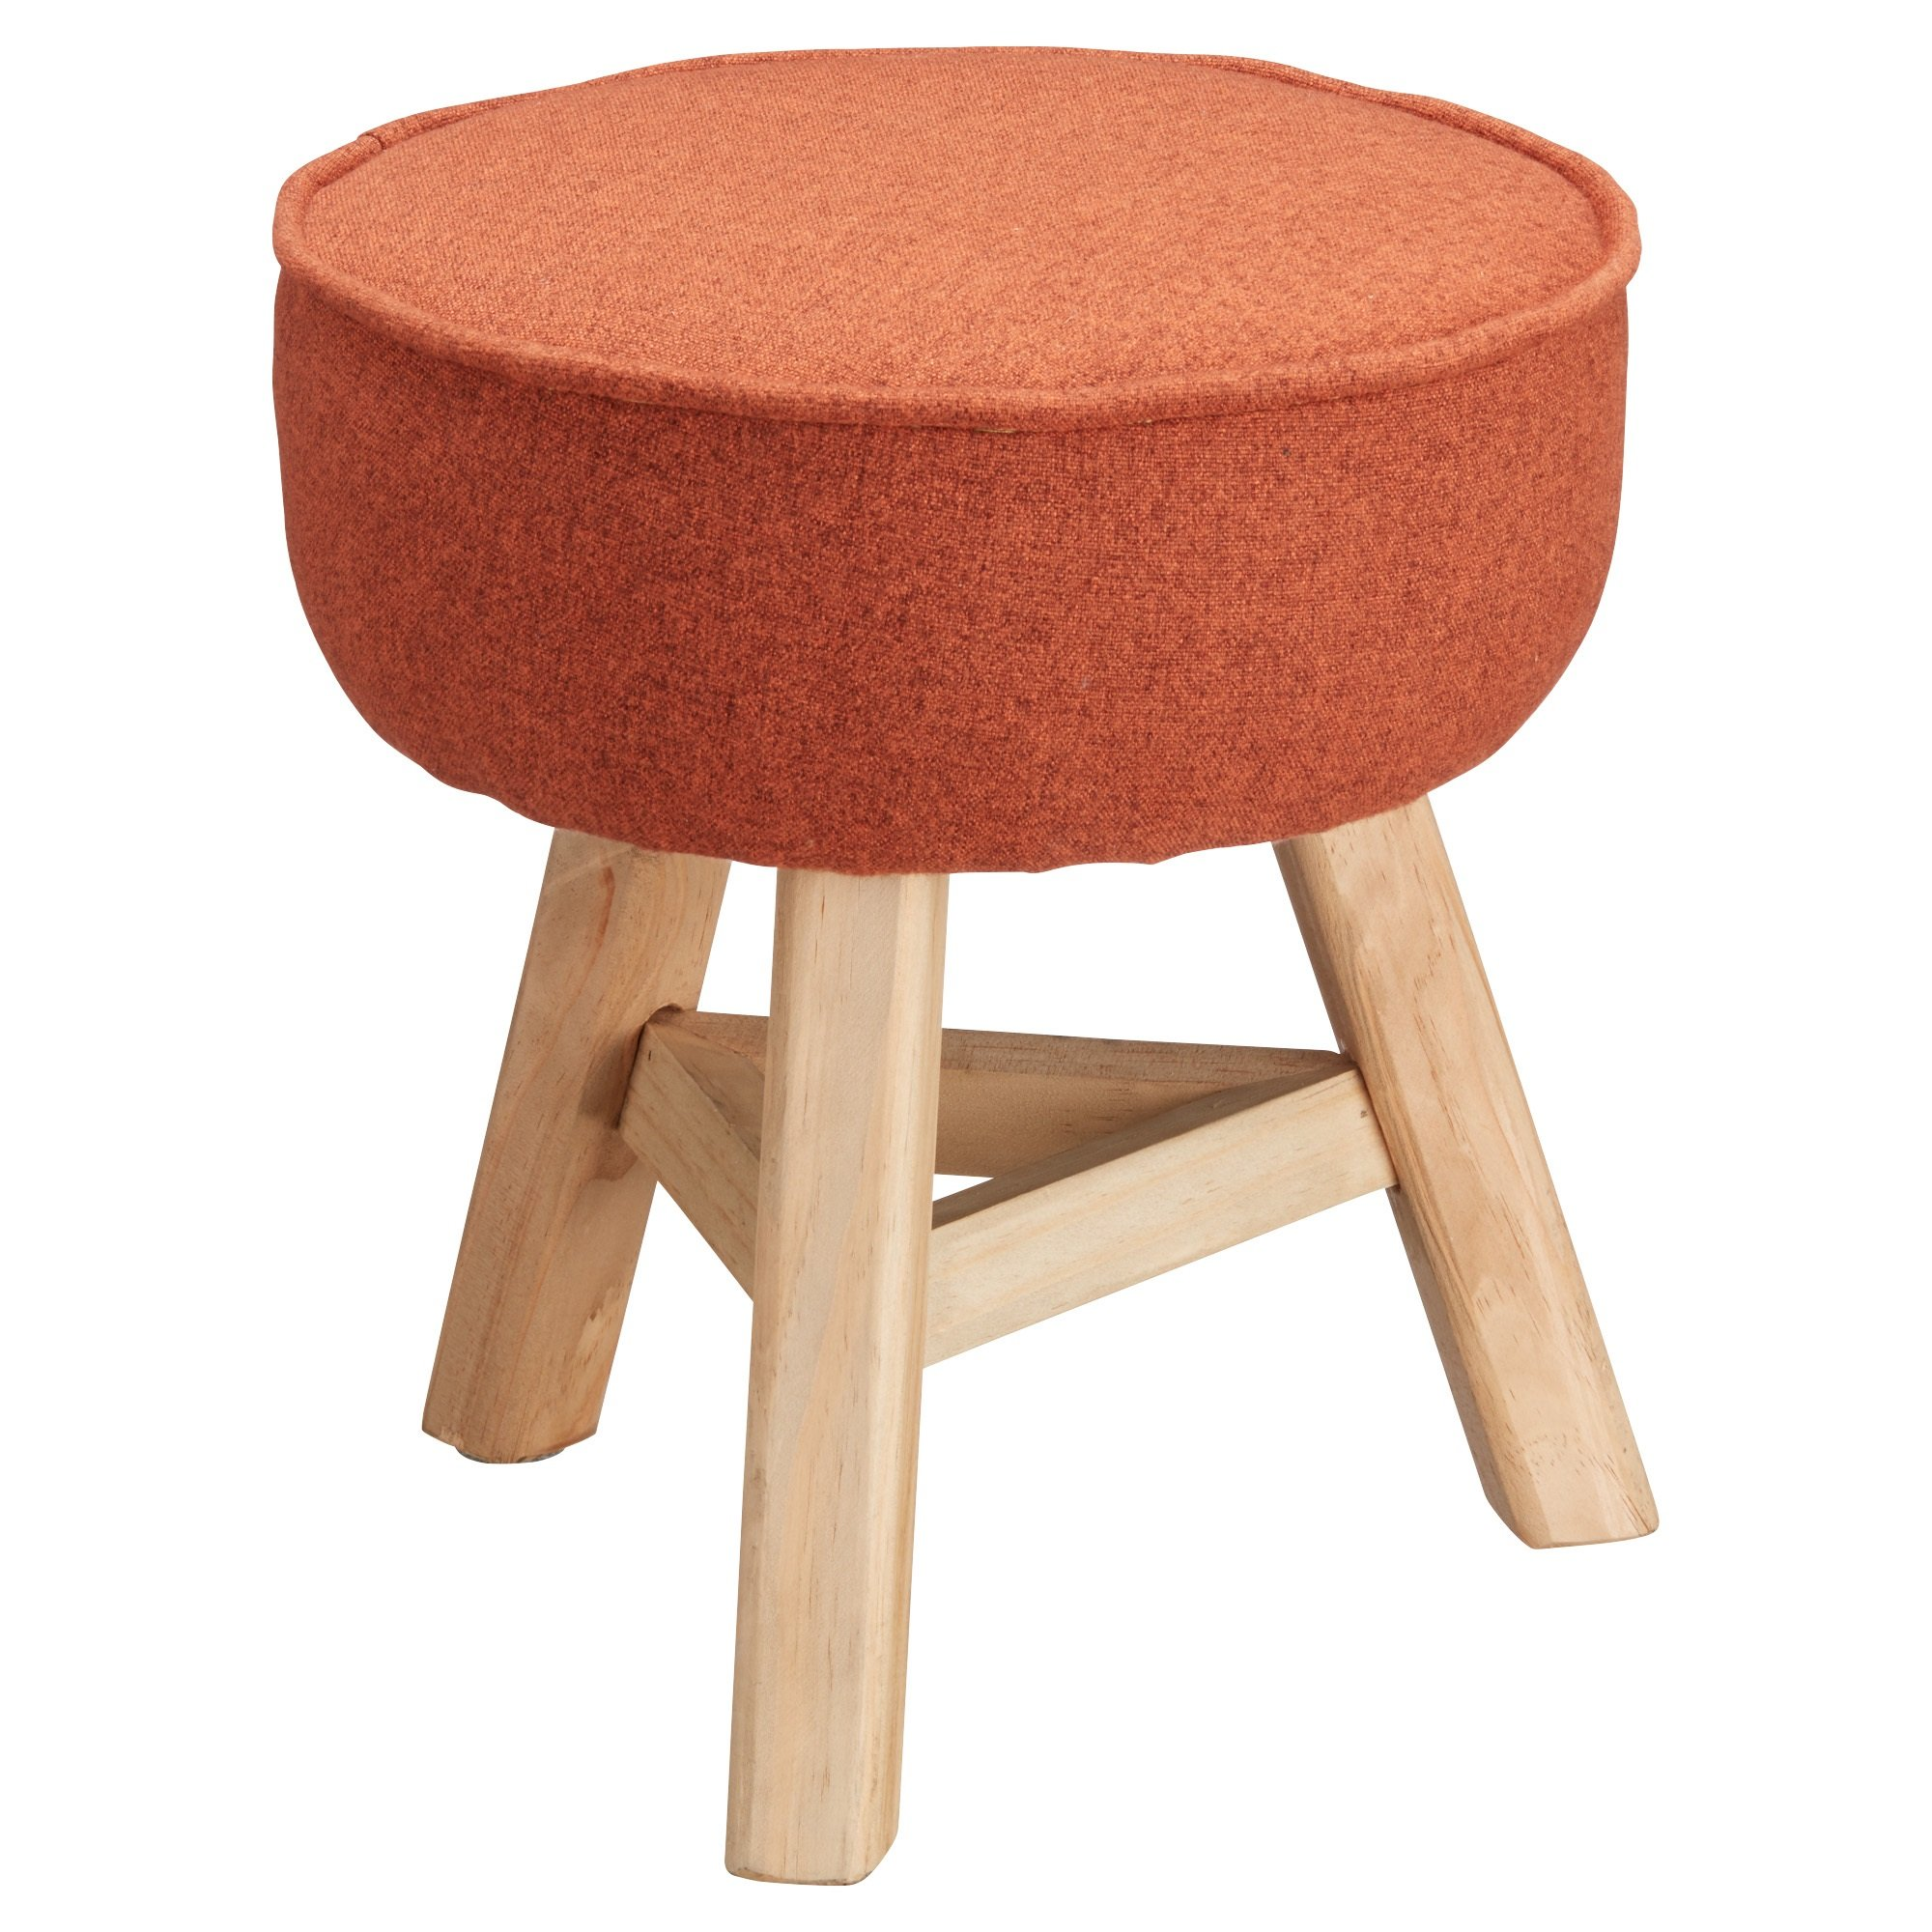 Tuinstoelen Sligro Elegant Affordable Best Houten Krukje Of Barkruk U